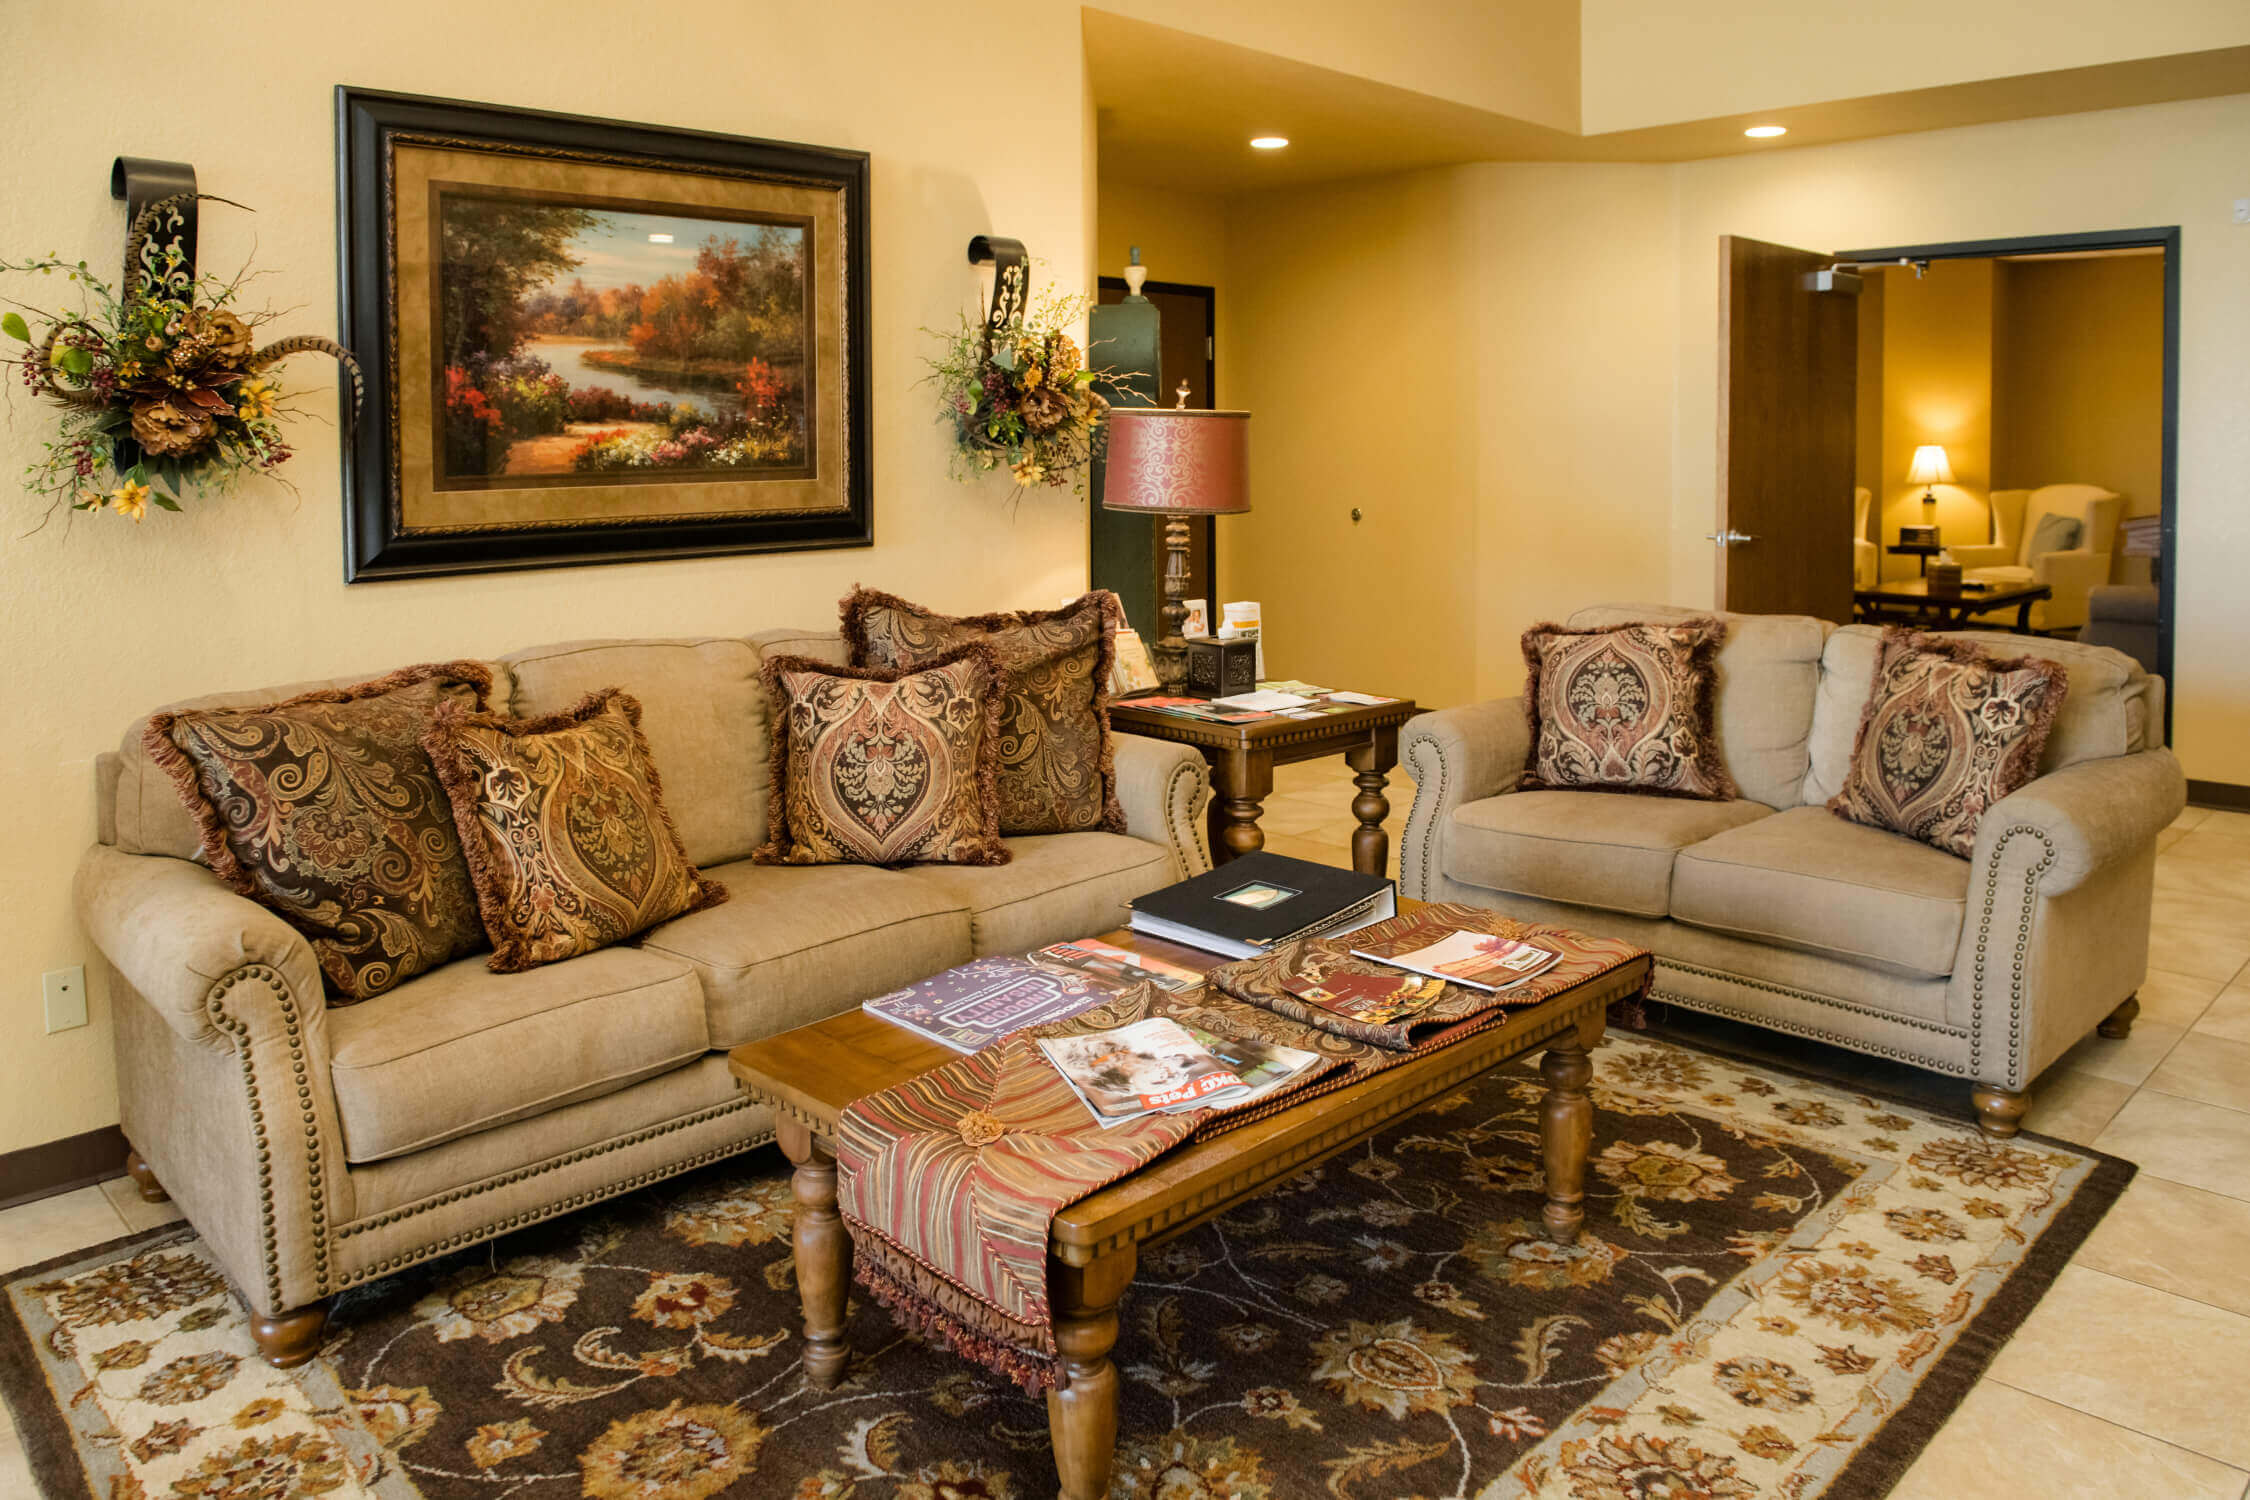 tour our funeral home in Moore, OK